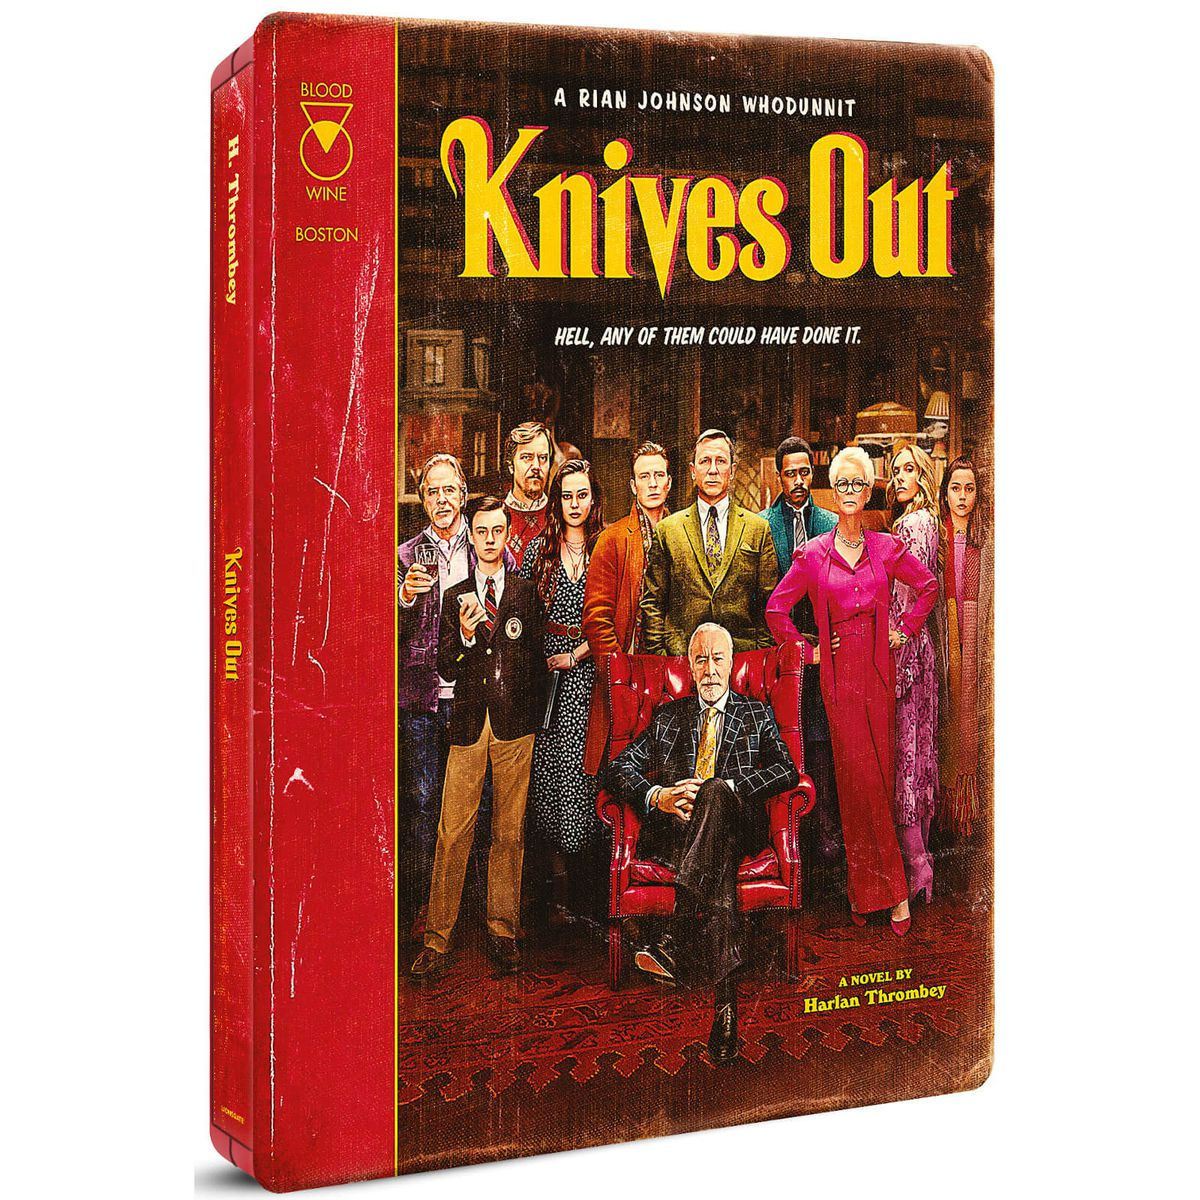 A product shot of the exclusive Knives Out steelbook case